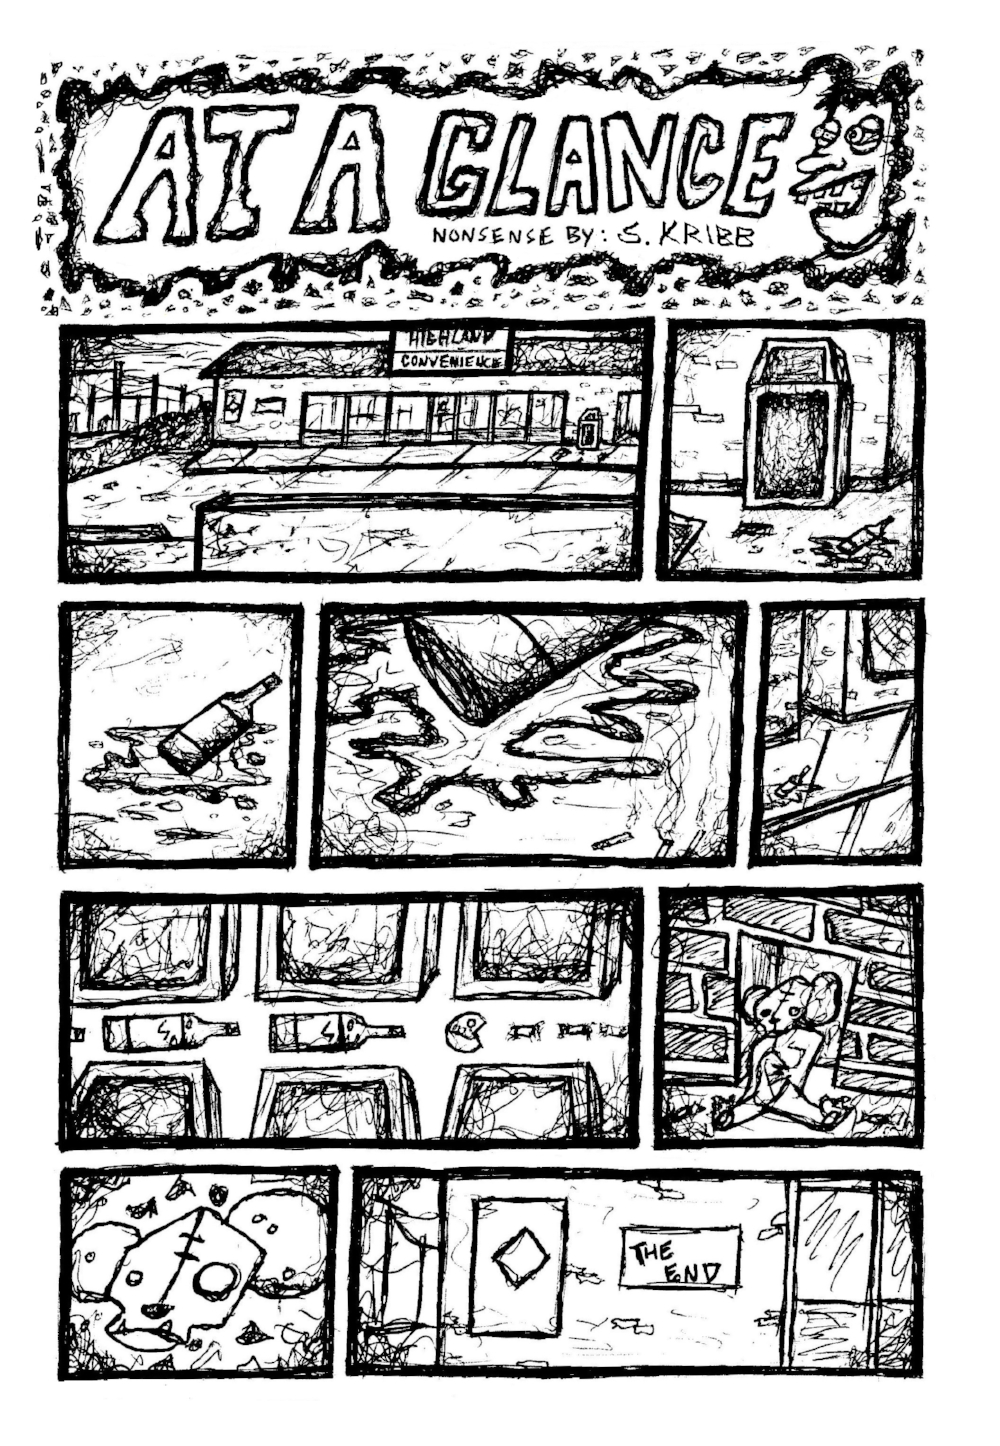 Here's a wacky glance into some ponderings of the local convenience store in which I've purchased many Jones Sodas, slurpees, sour candy, and other junk since adolescence.Things got a tiny bit weird as I allowed my mind to wander from panel to panel. I would like to expand on this one page comic further in the future and continue the visual storytelling.  Until then, I suggest you pay a visit to your local convenience store. I'm sure they'll have plenty of your favorite snacks, cigarettes, cheap cell phones, and maybe even some of those foam tasting orange circus peanut candies that I'm pretty sure no one ever buys. Why would you?  Sometimes these are the things that fill a cluttered and wandering mind...